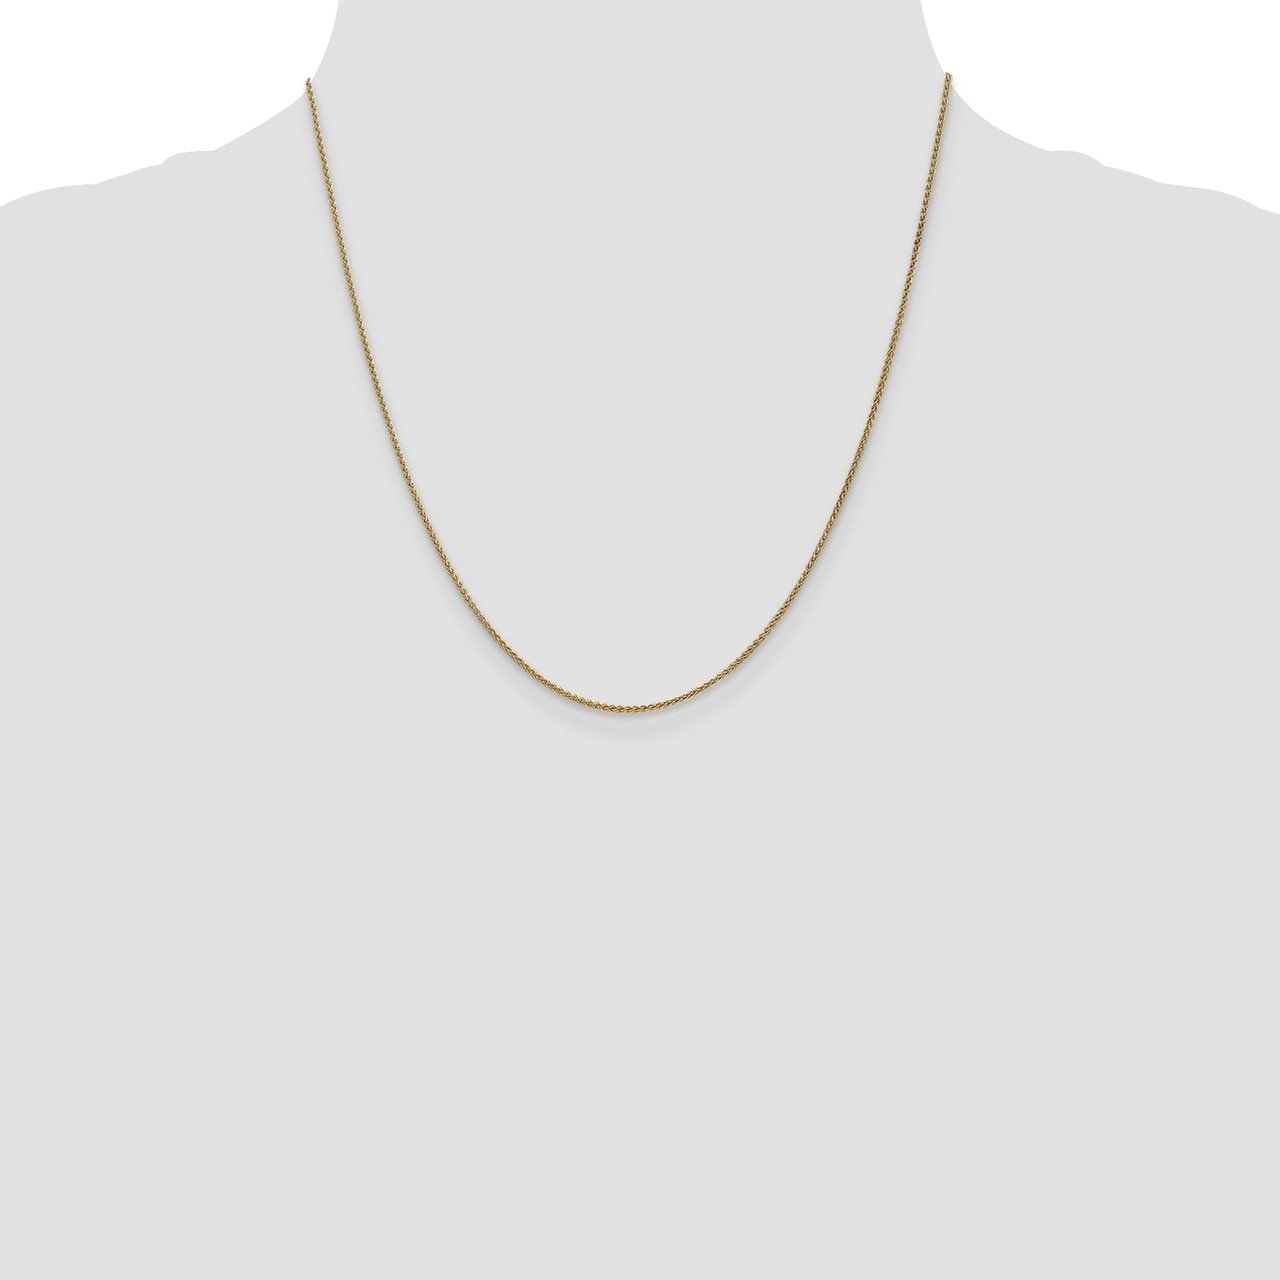 Lex /& Lu 14k Yellow Gold 1.25mm Spiga Chain Necklace or Anklet